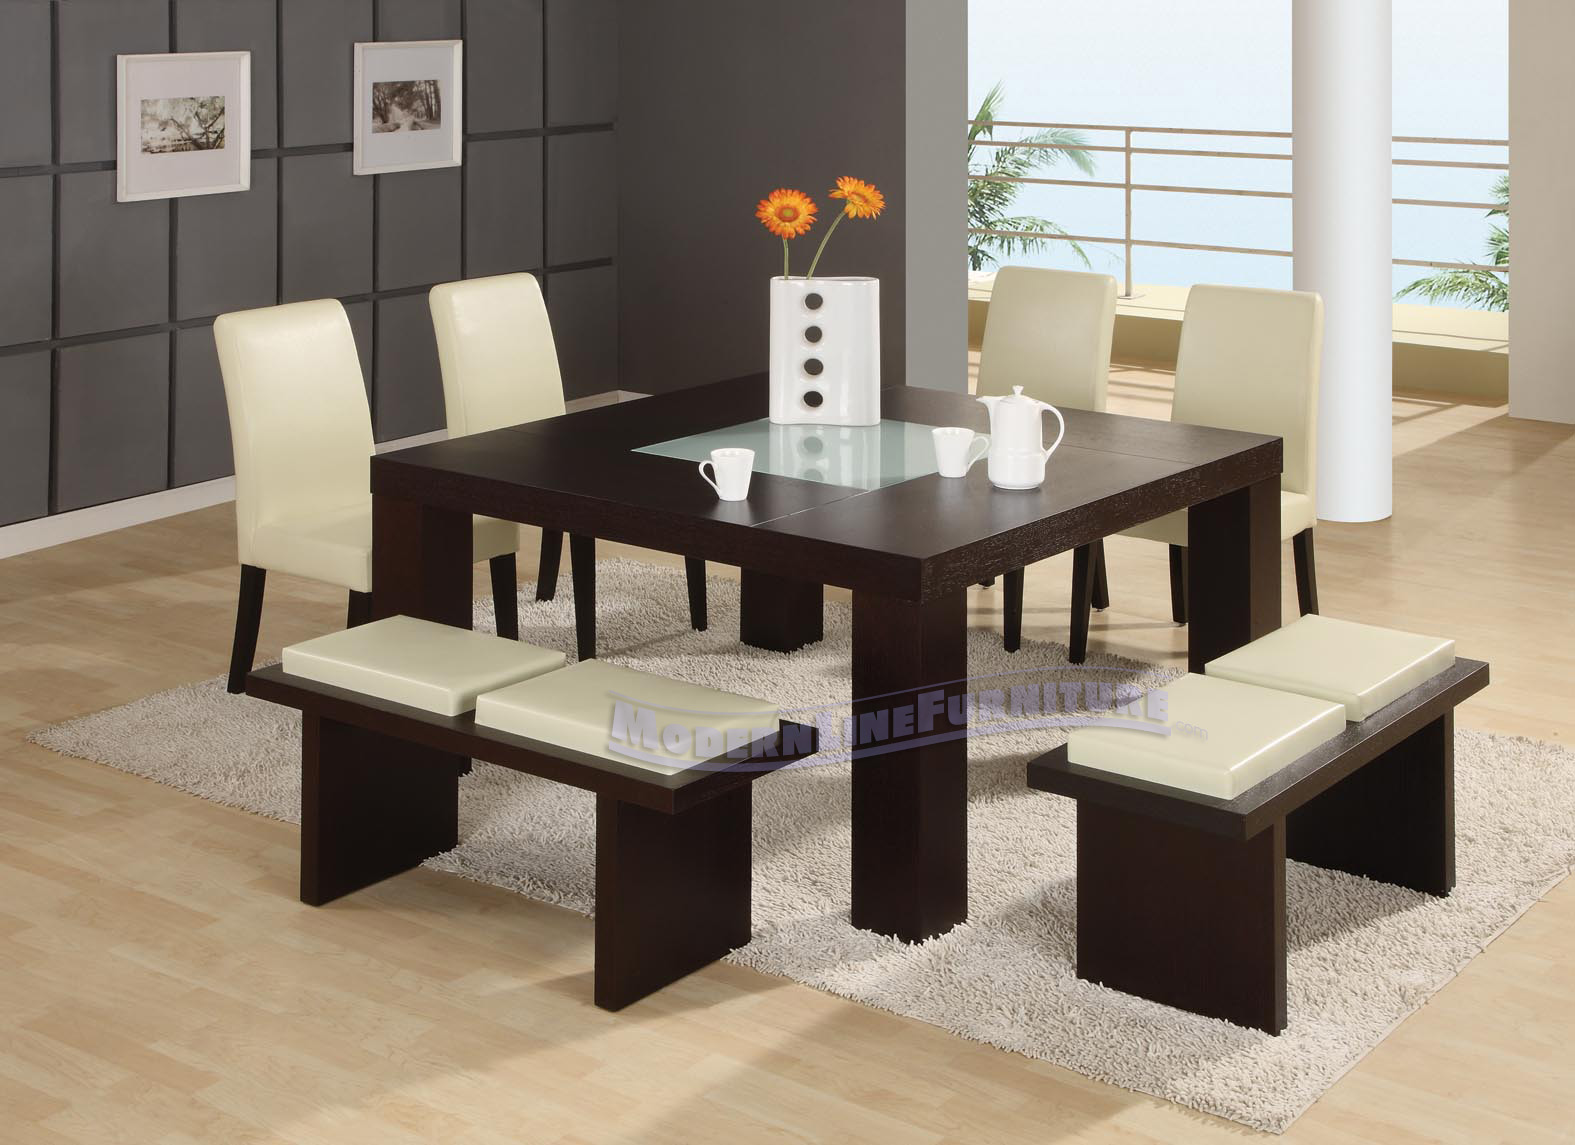 Restaurant furniture seating booths chairs tables bar for Modern chic furniture